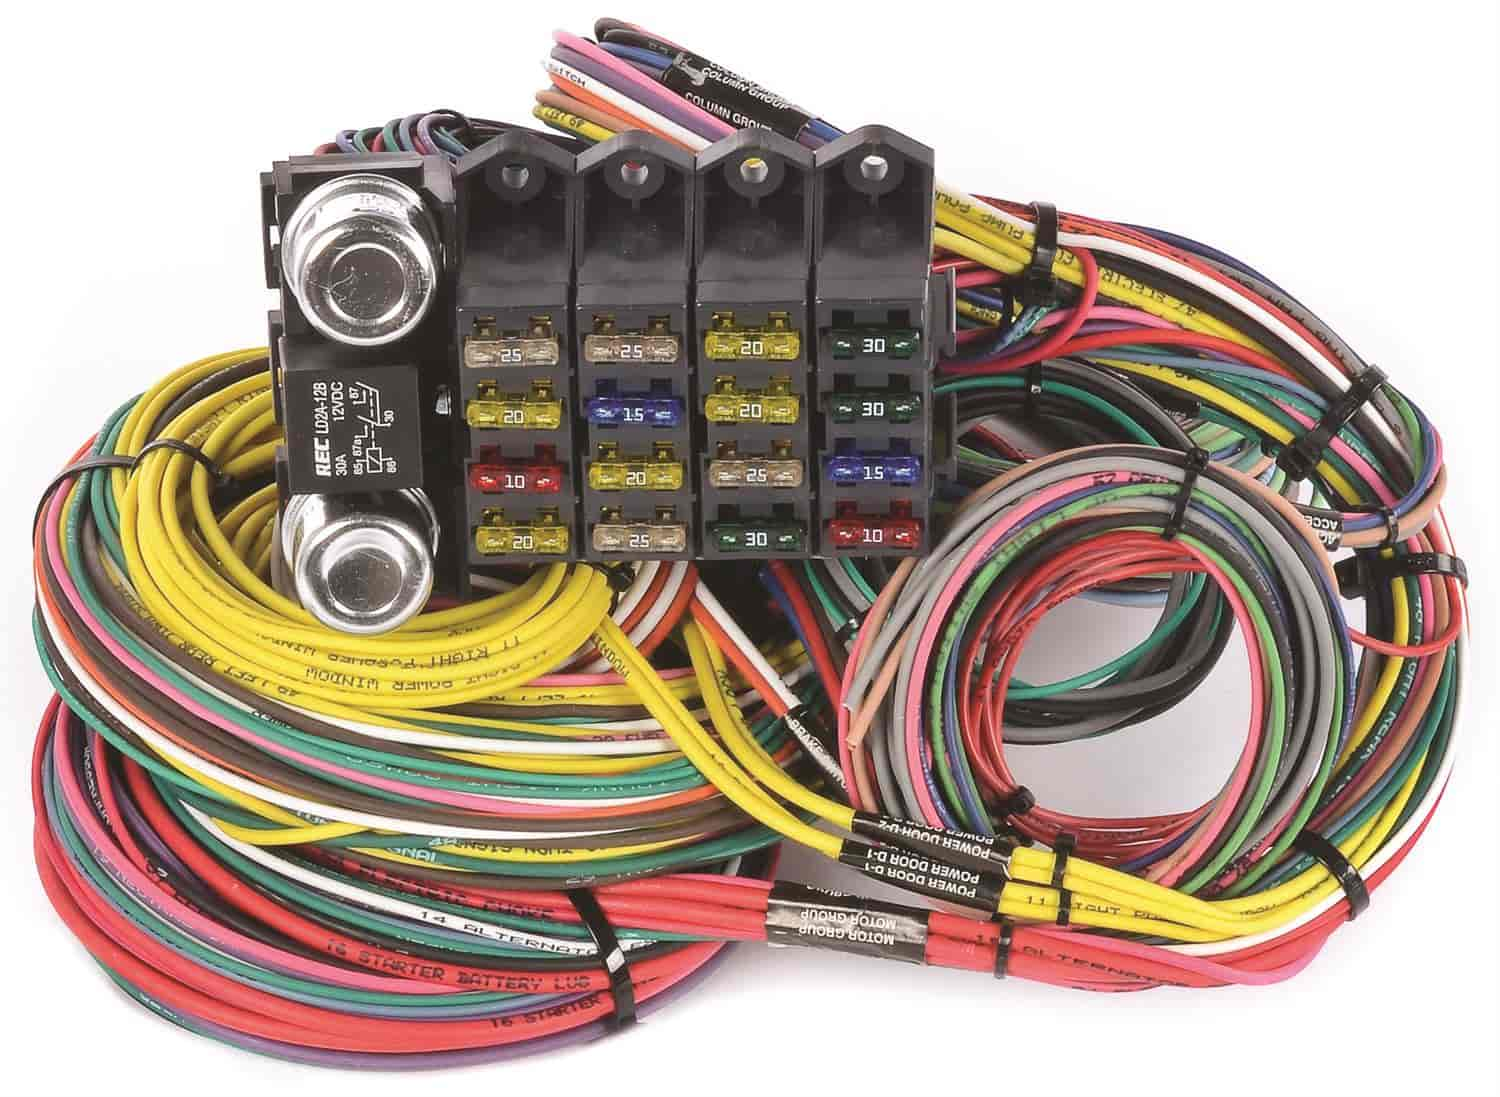 555 10405 jegs performance products 10405 universal wiring harness, 20 GM Turn Signal Wiring at readyjetset.co